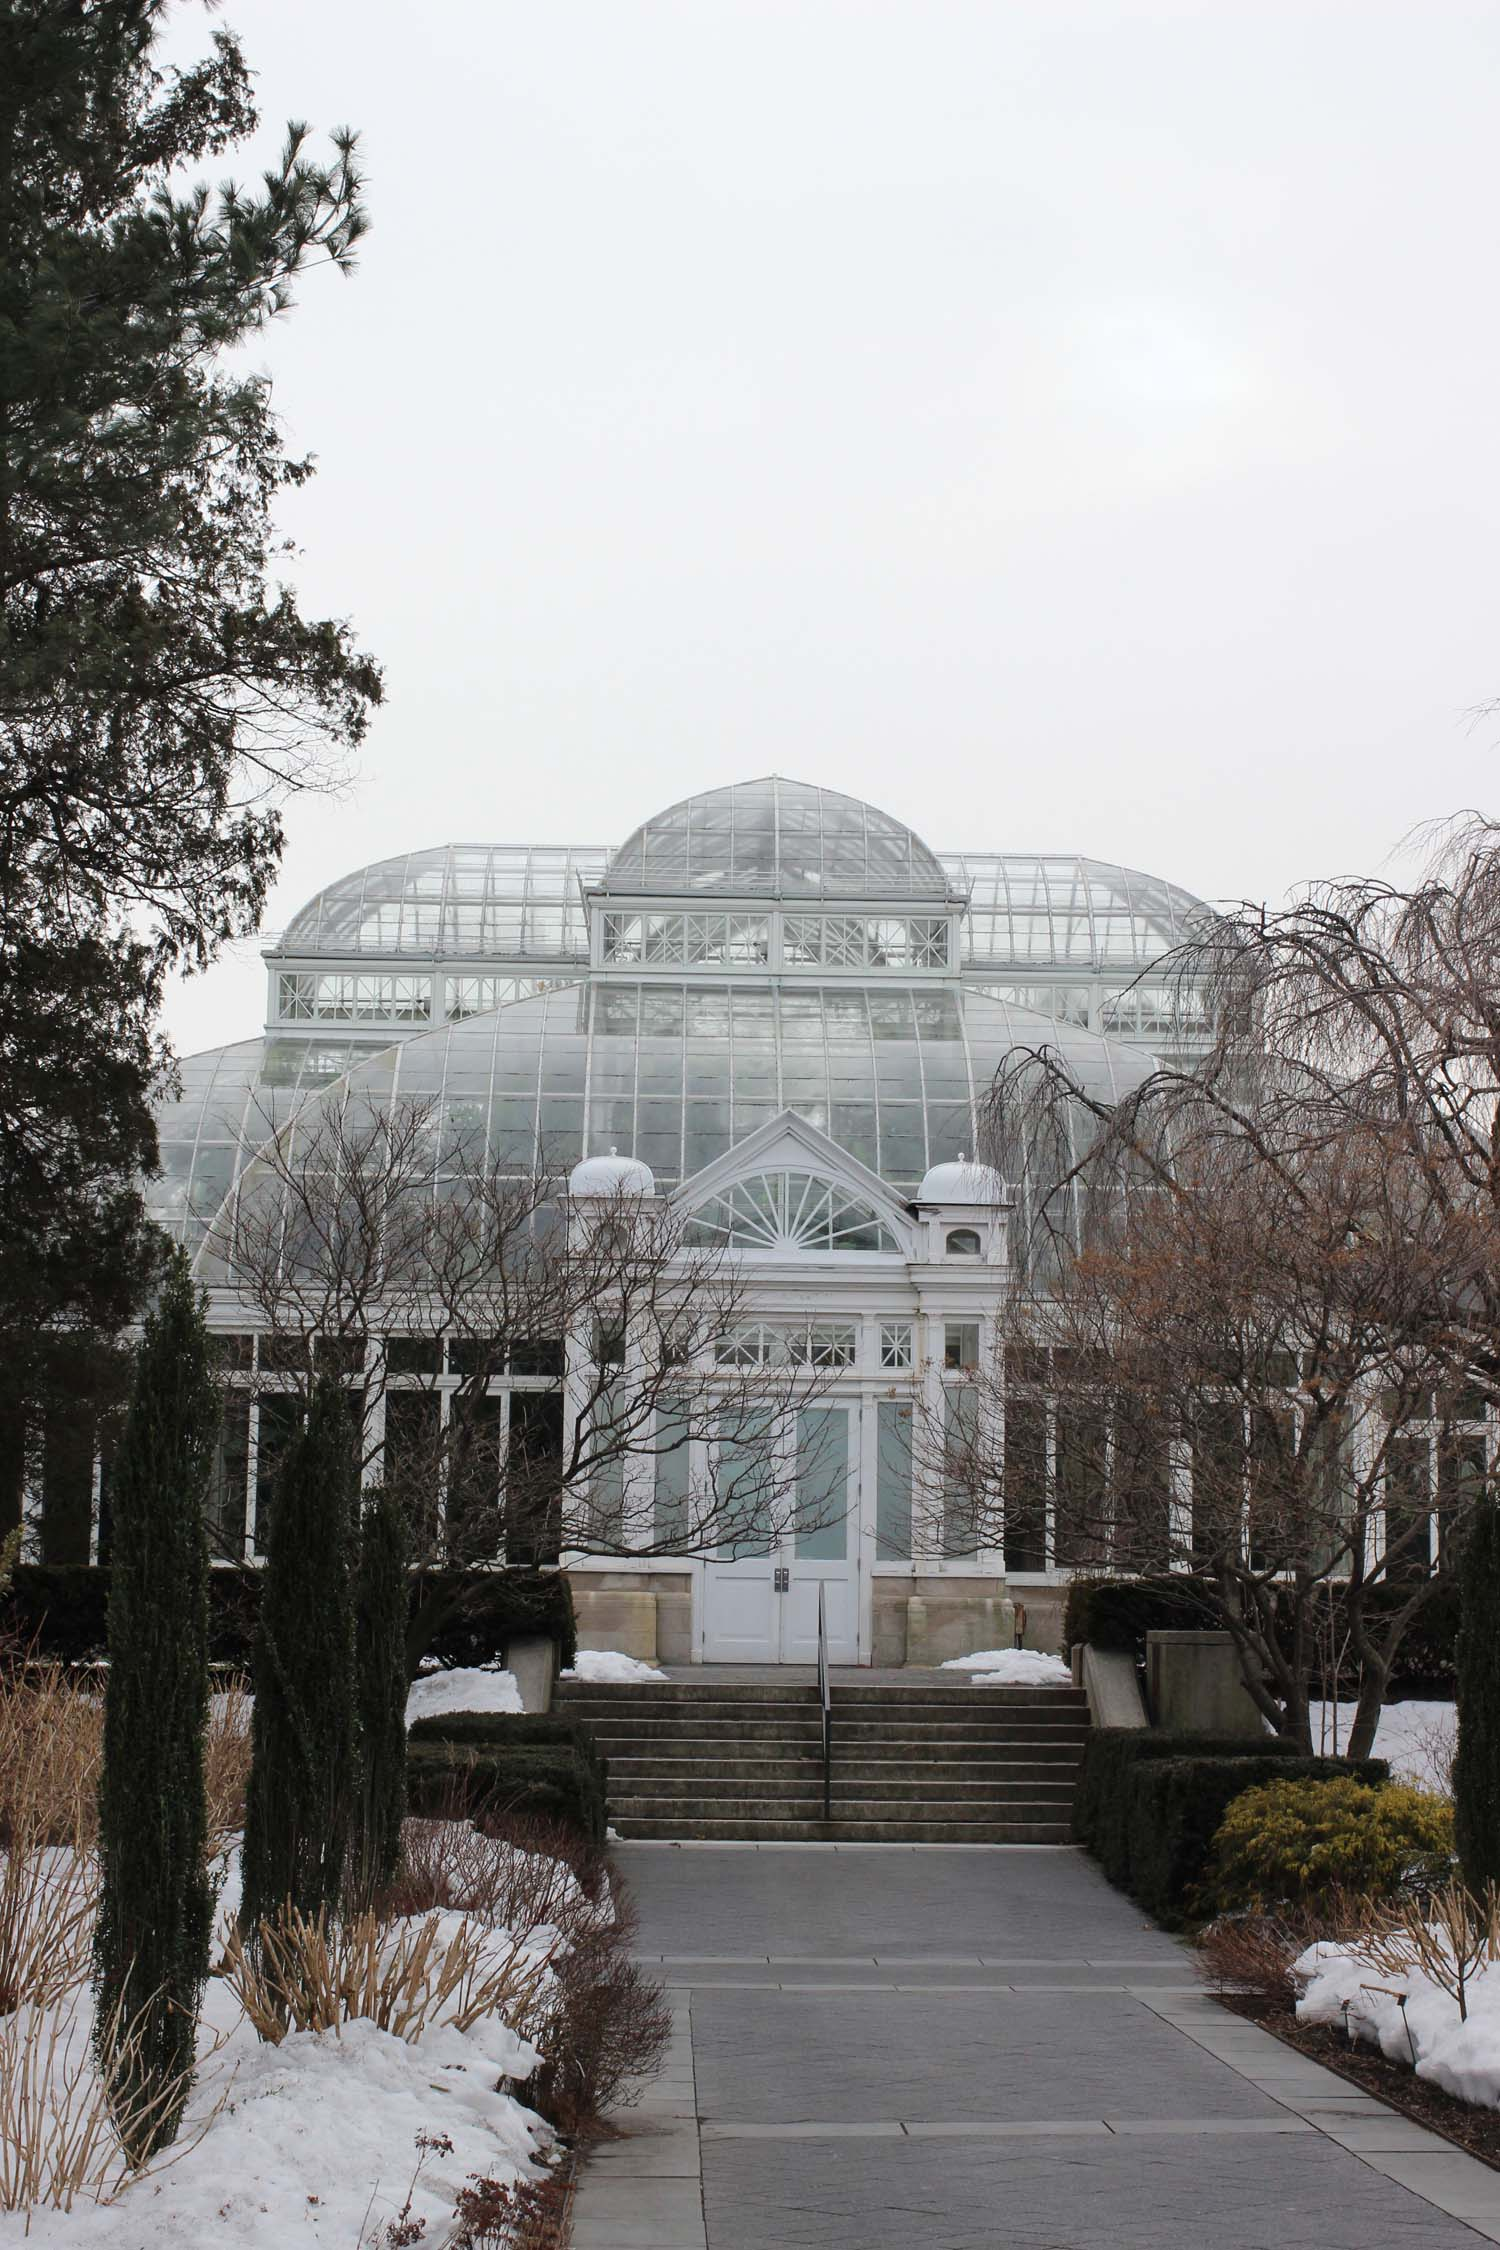 Enid A. Haupt Conservatory ; Image: Laura Messersmith